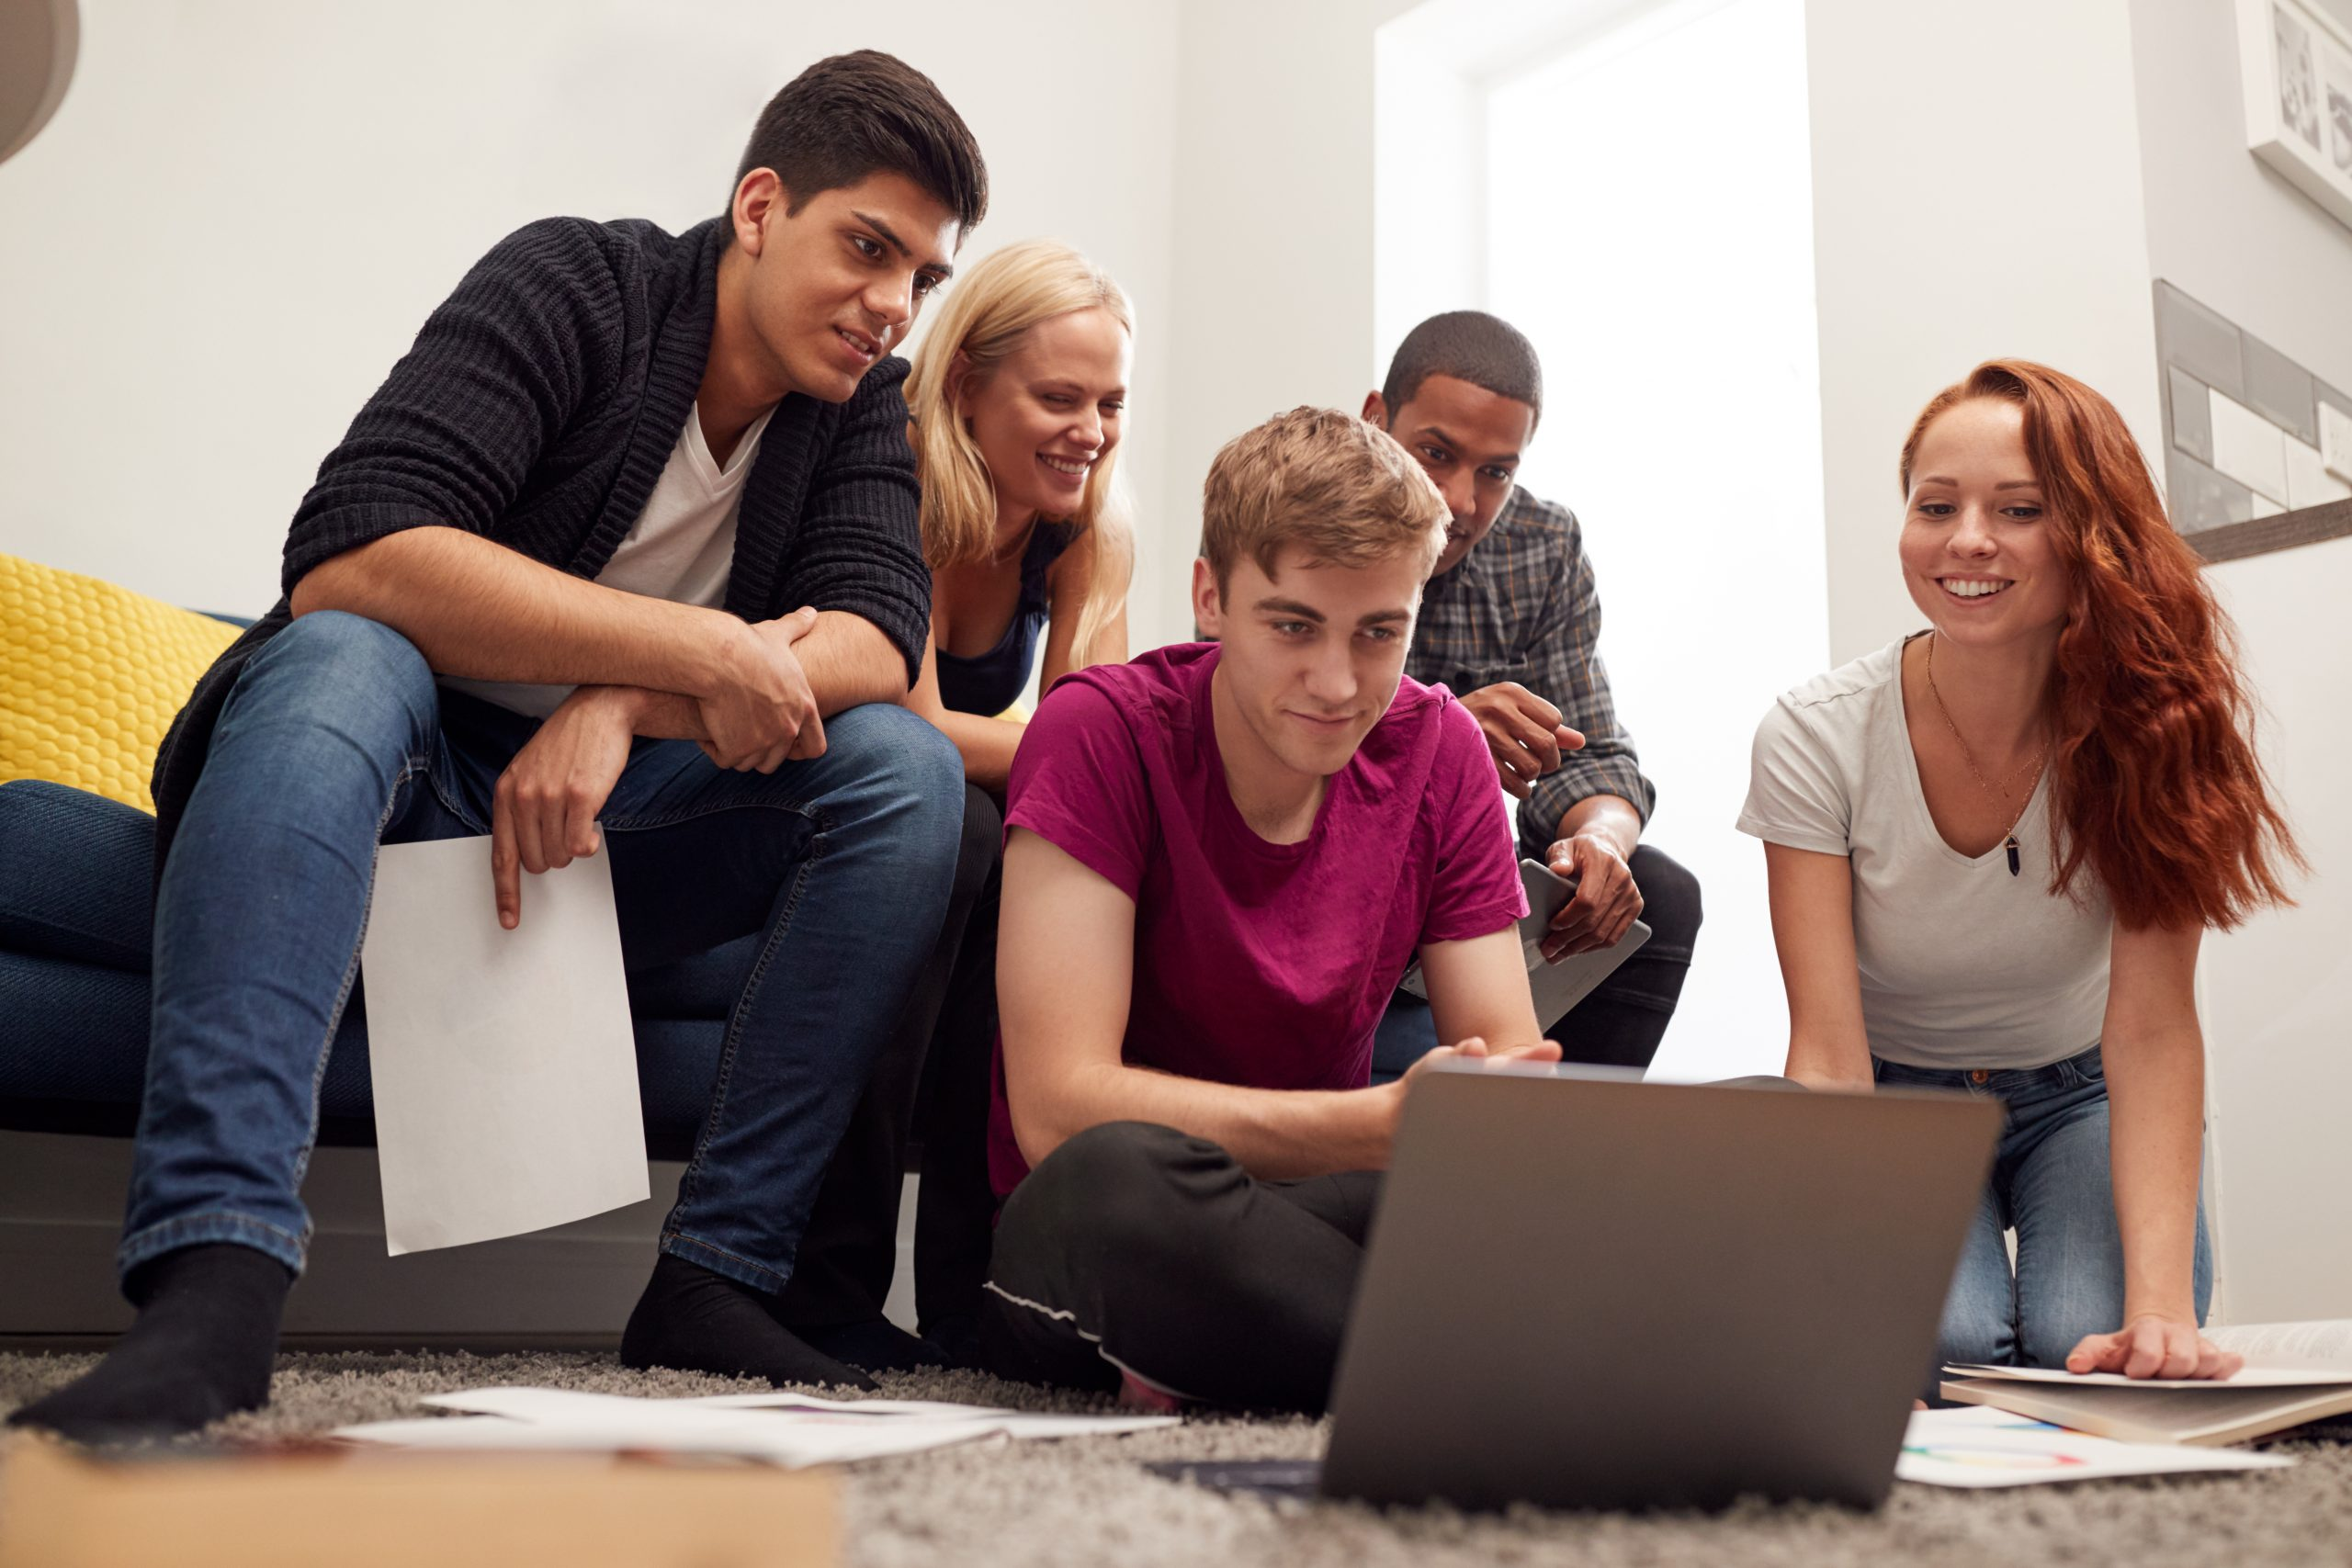 Group Of College Students In Lounge